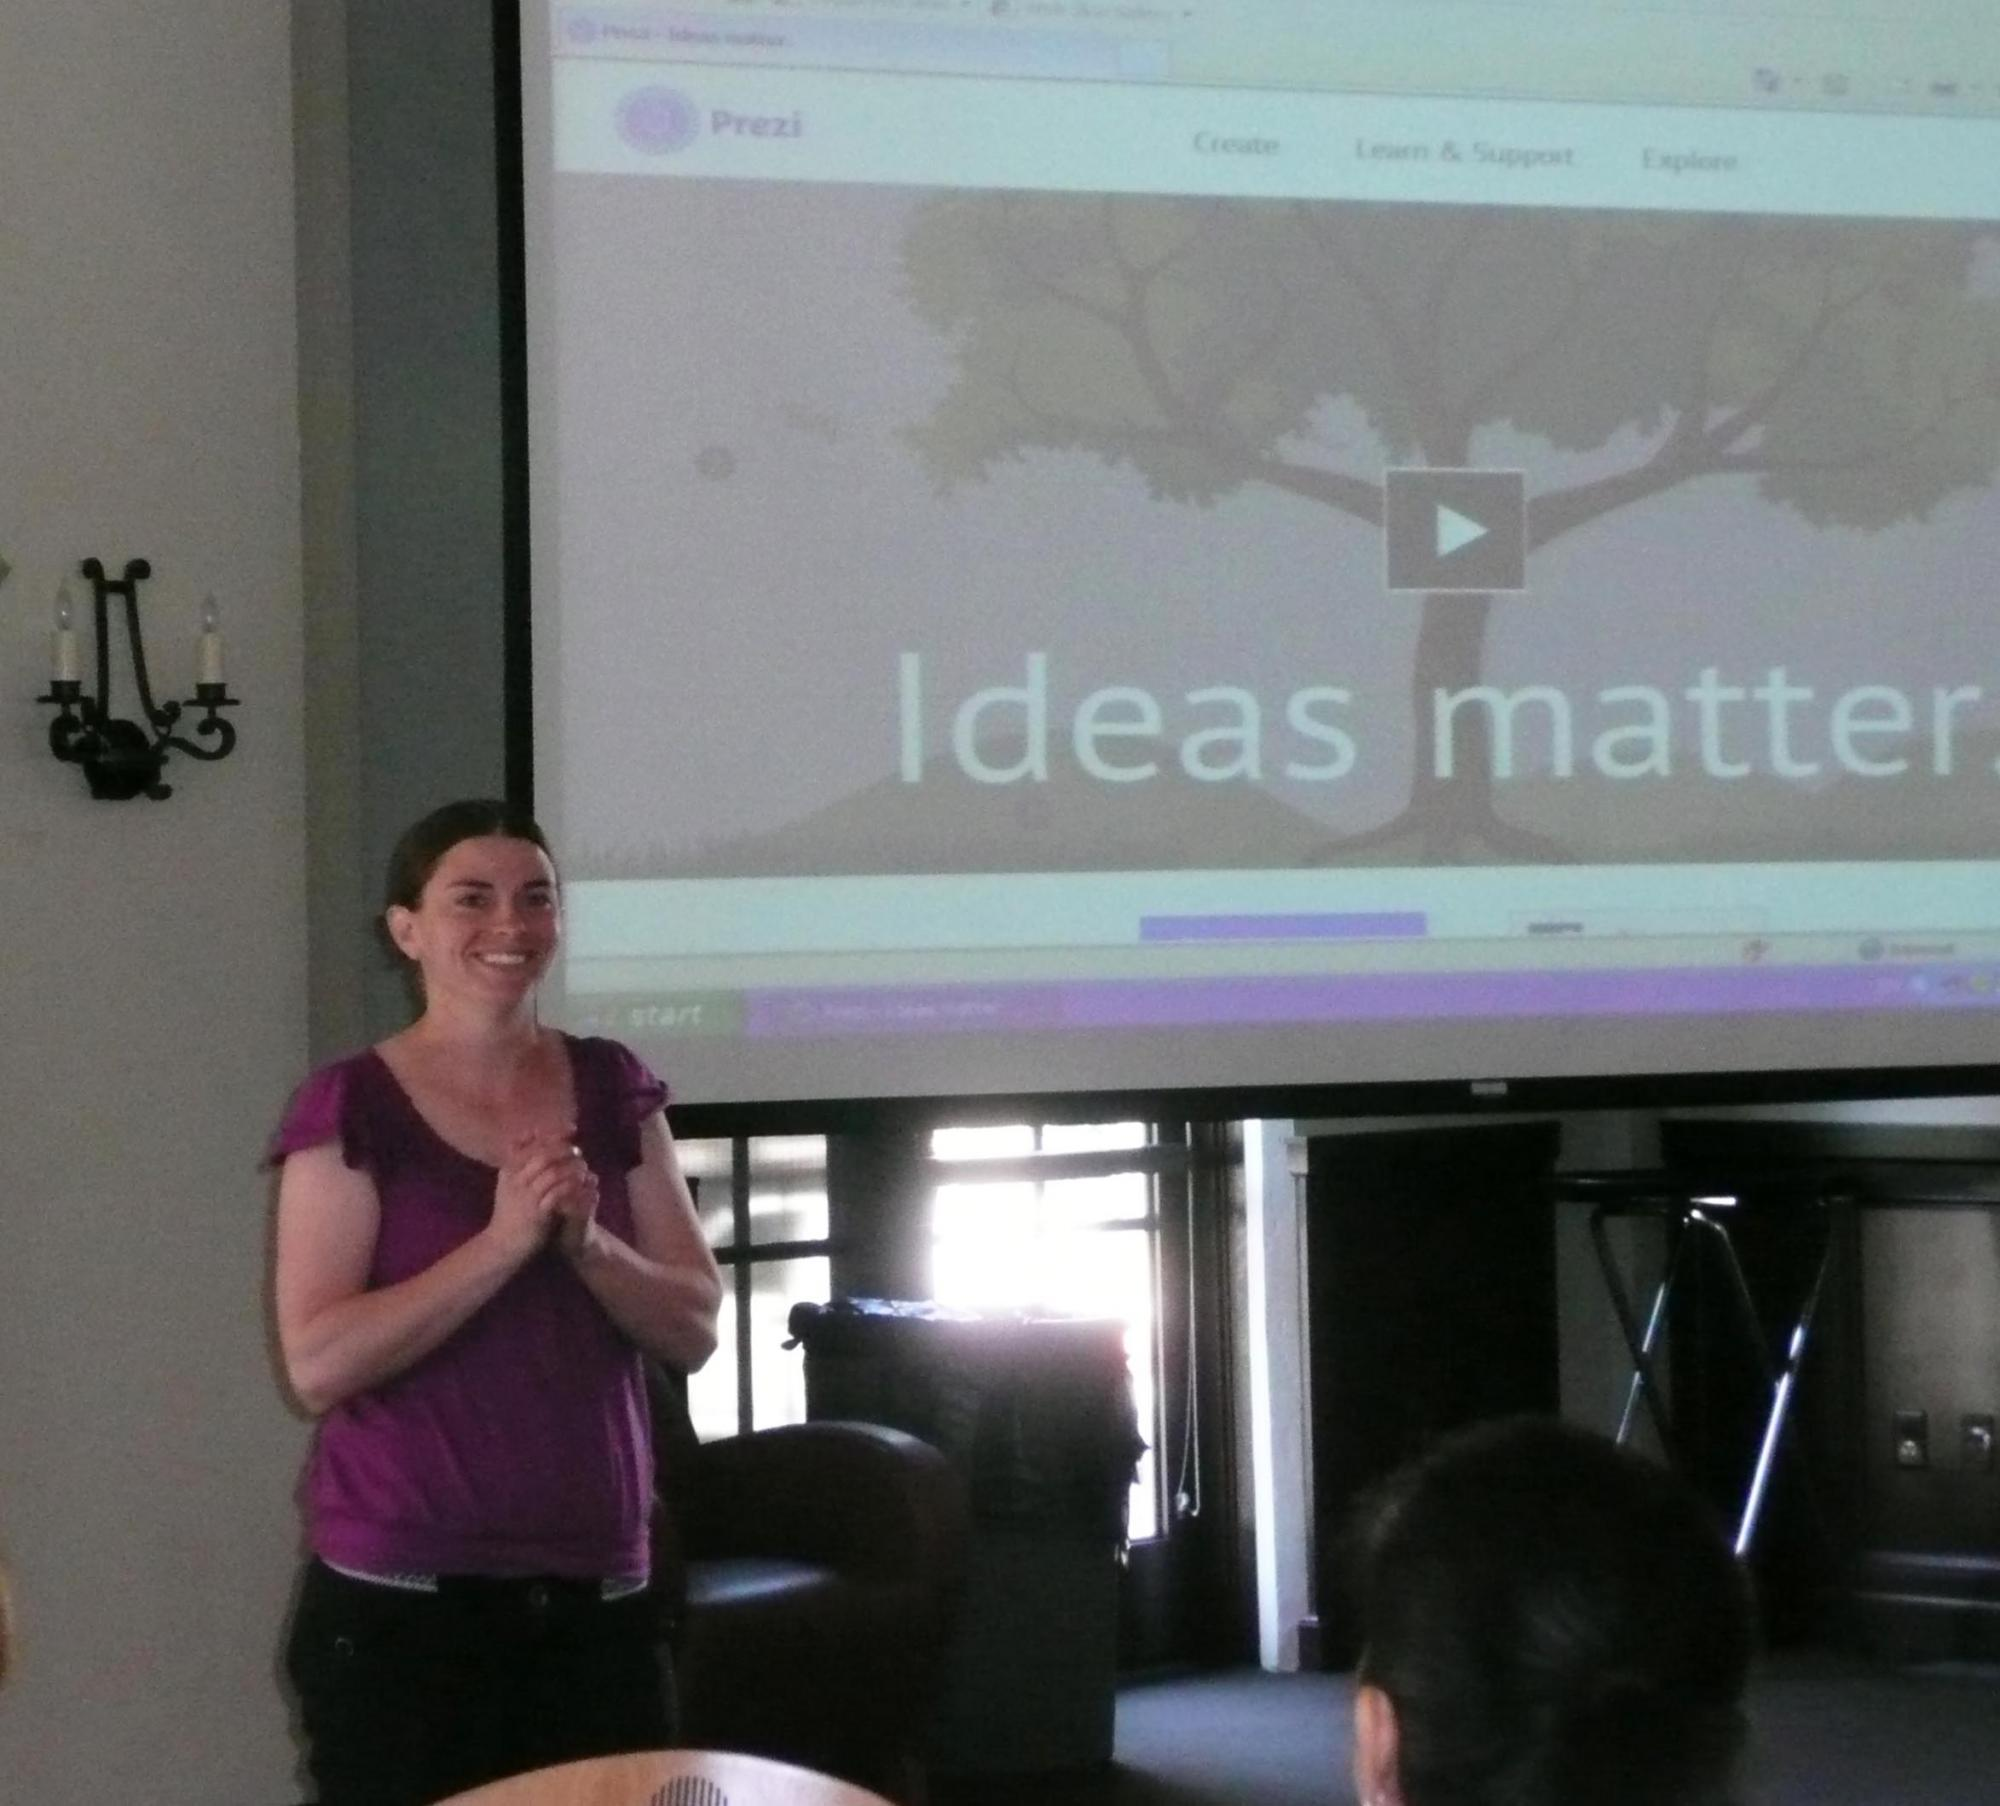 Staff Council Chair and librarian Alle Porter demonstrated Prezi, a spiffy new tool for creating presentations.